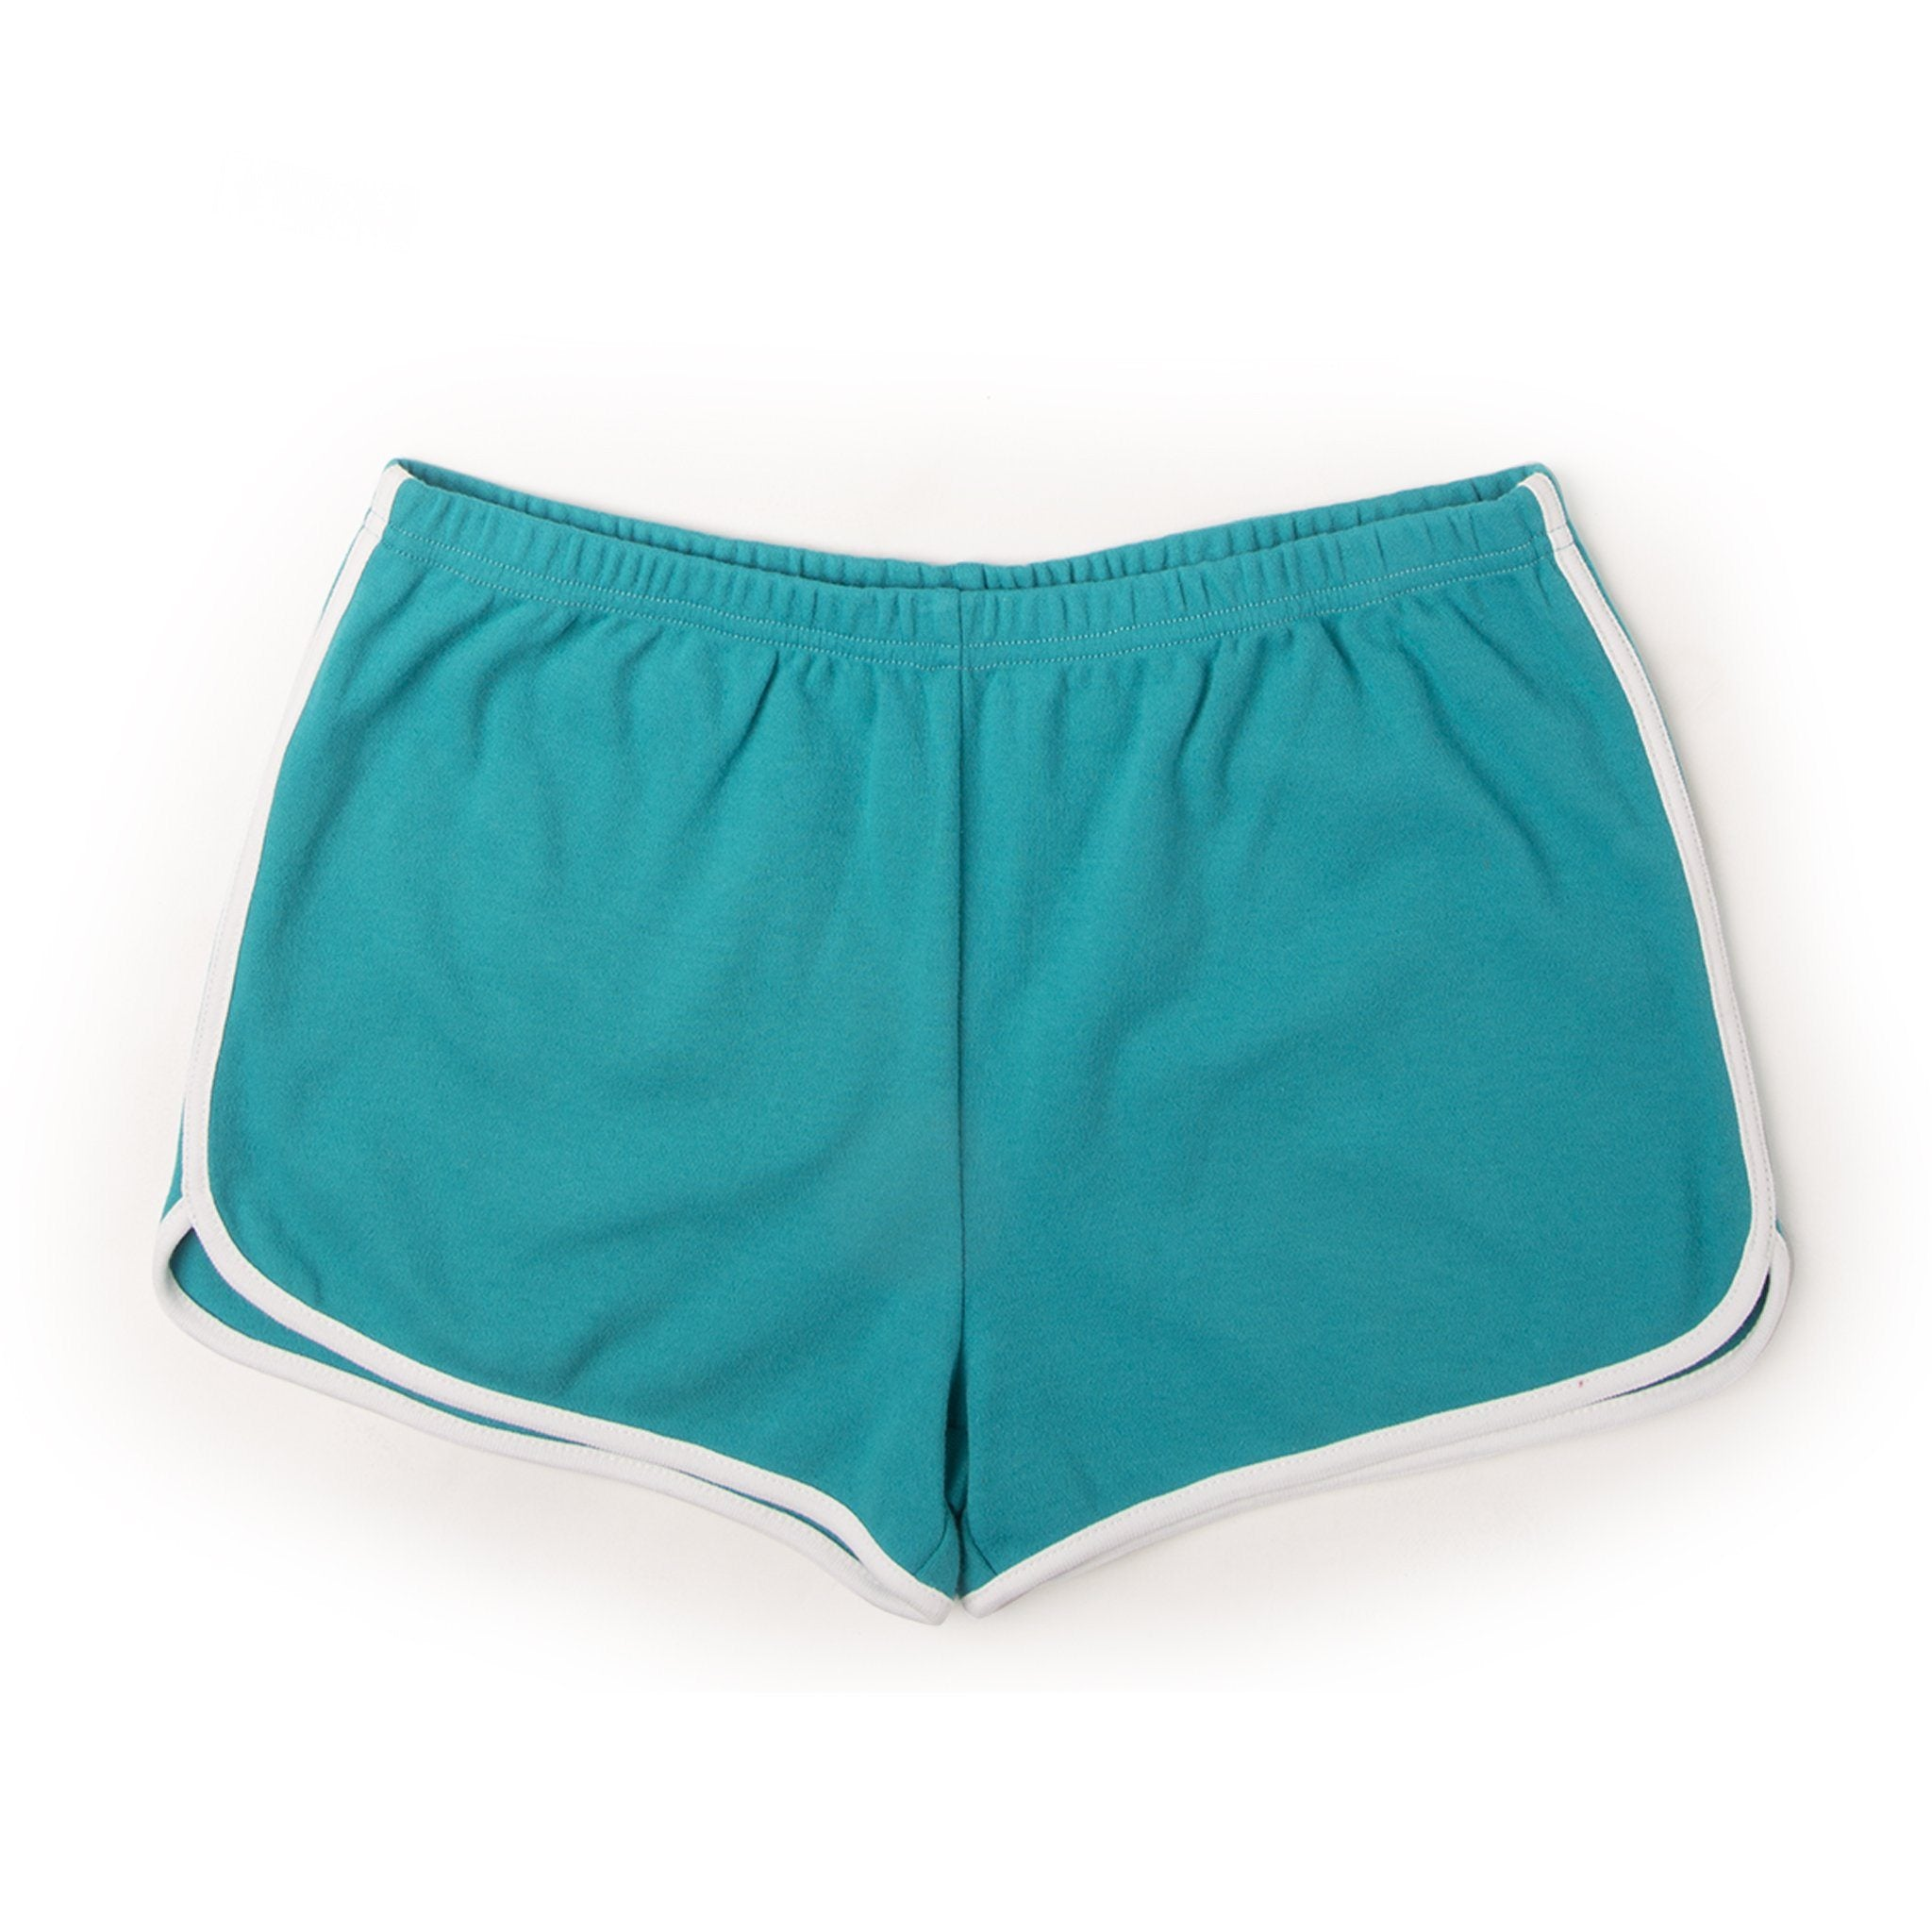 Sleepy Time PJs 2 piece pyjamas teal shorts with white trim in varying sizes for girls.